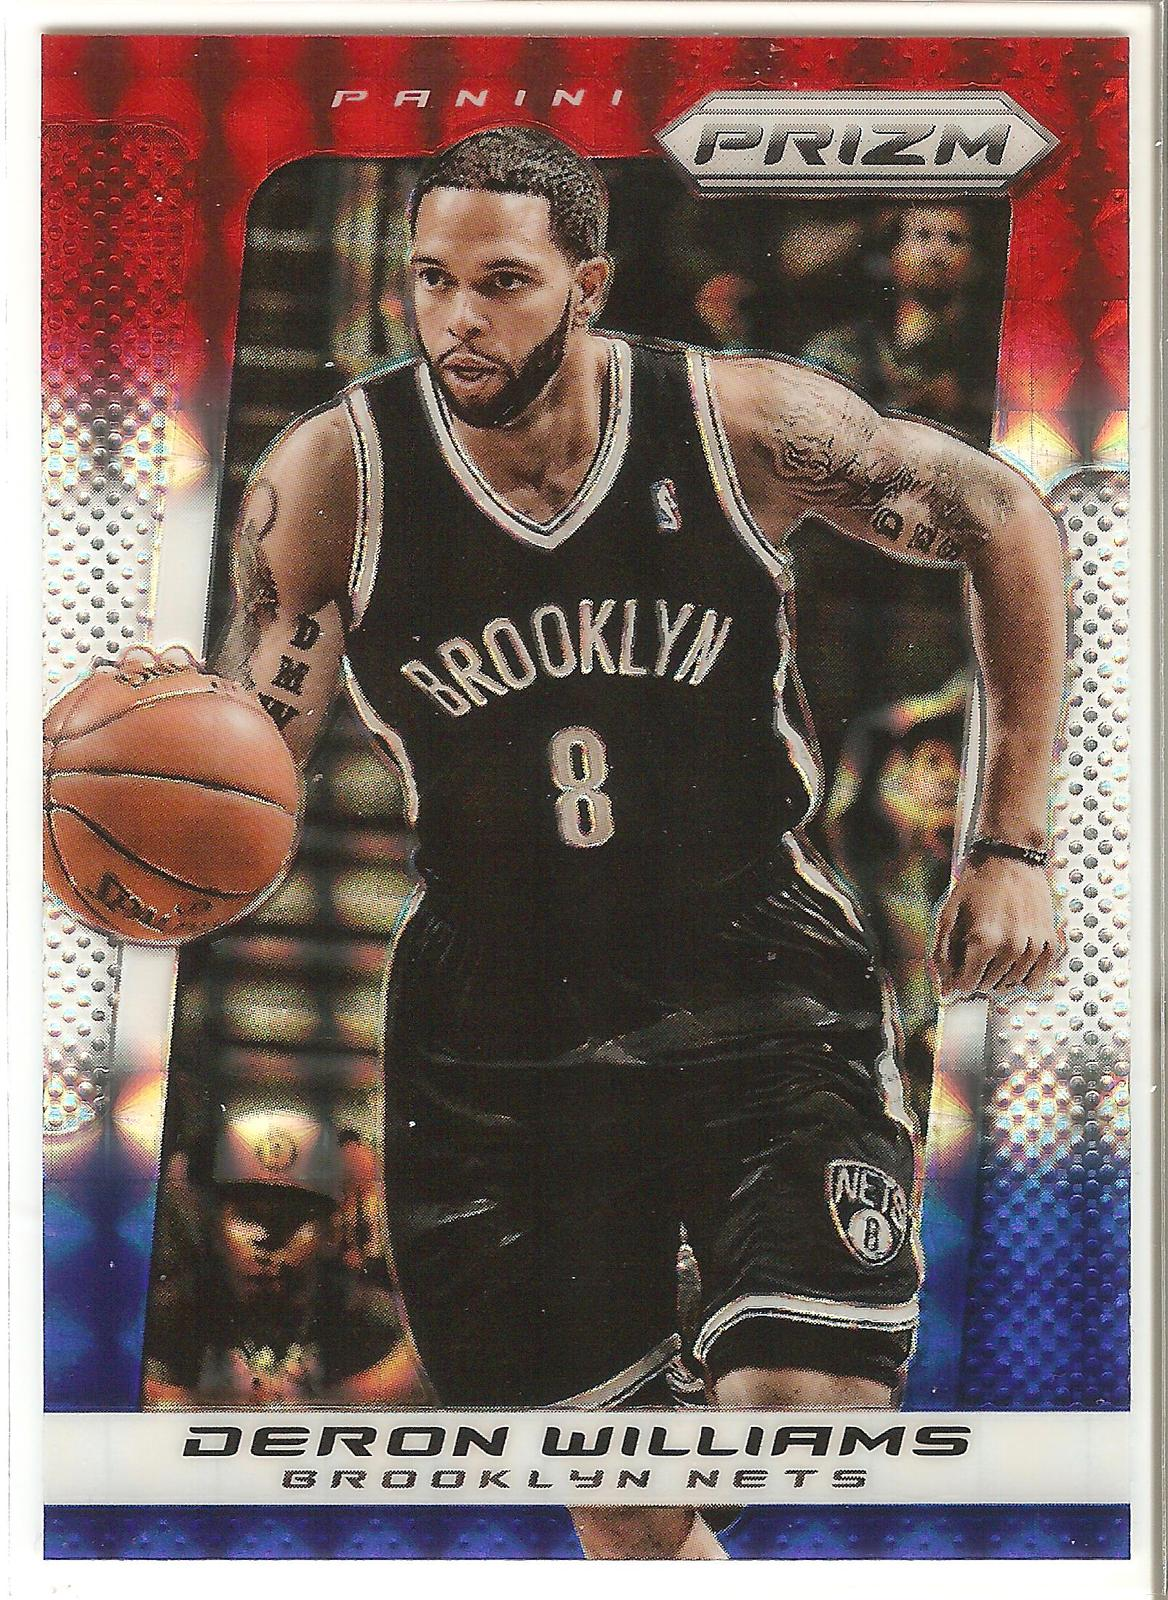 Deron Williams Prizm 13-14 #139 Red White Blue Refractor Brookly Nets Dallas